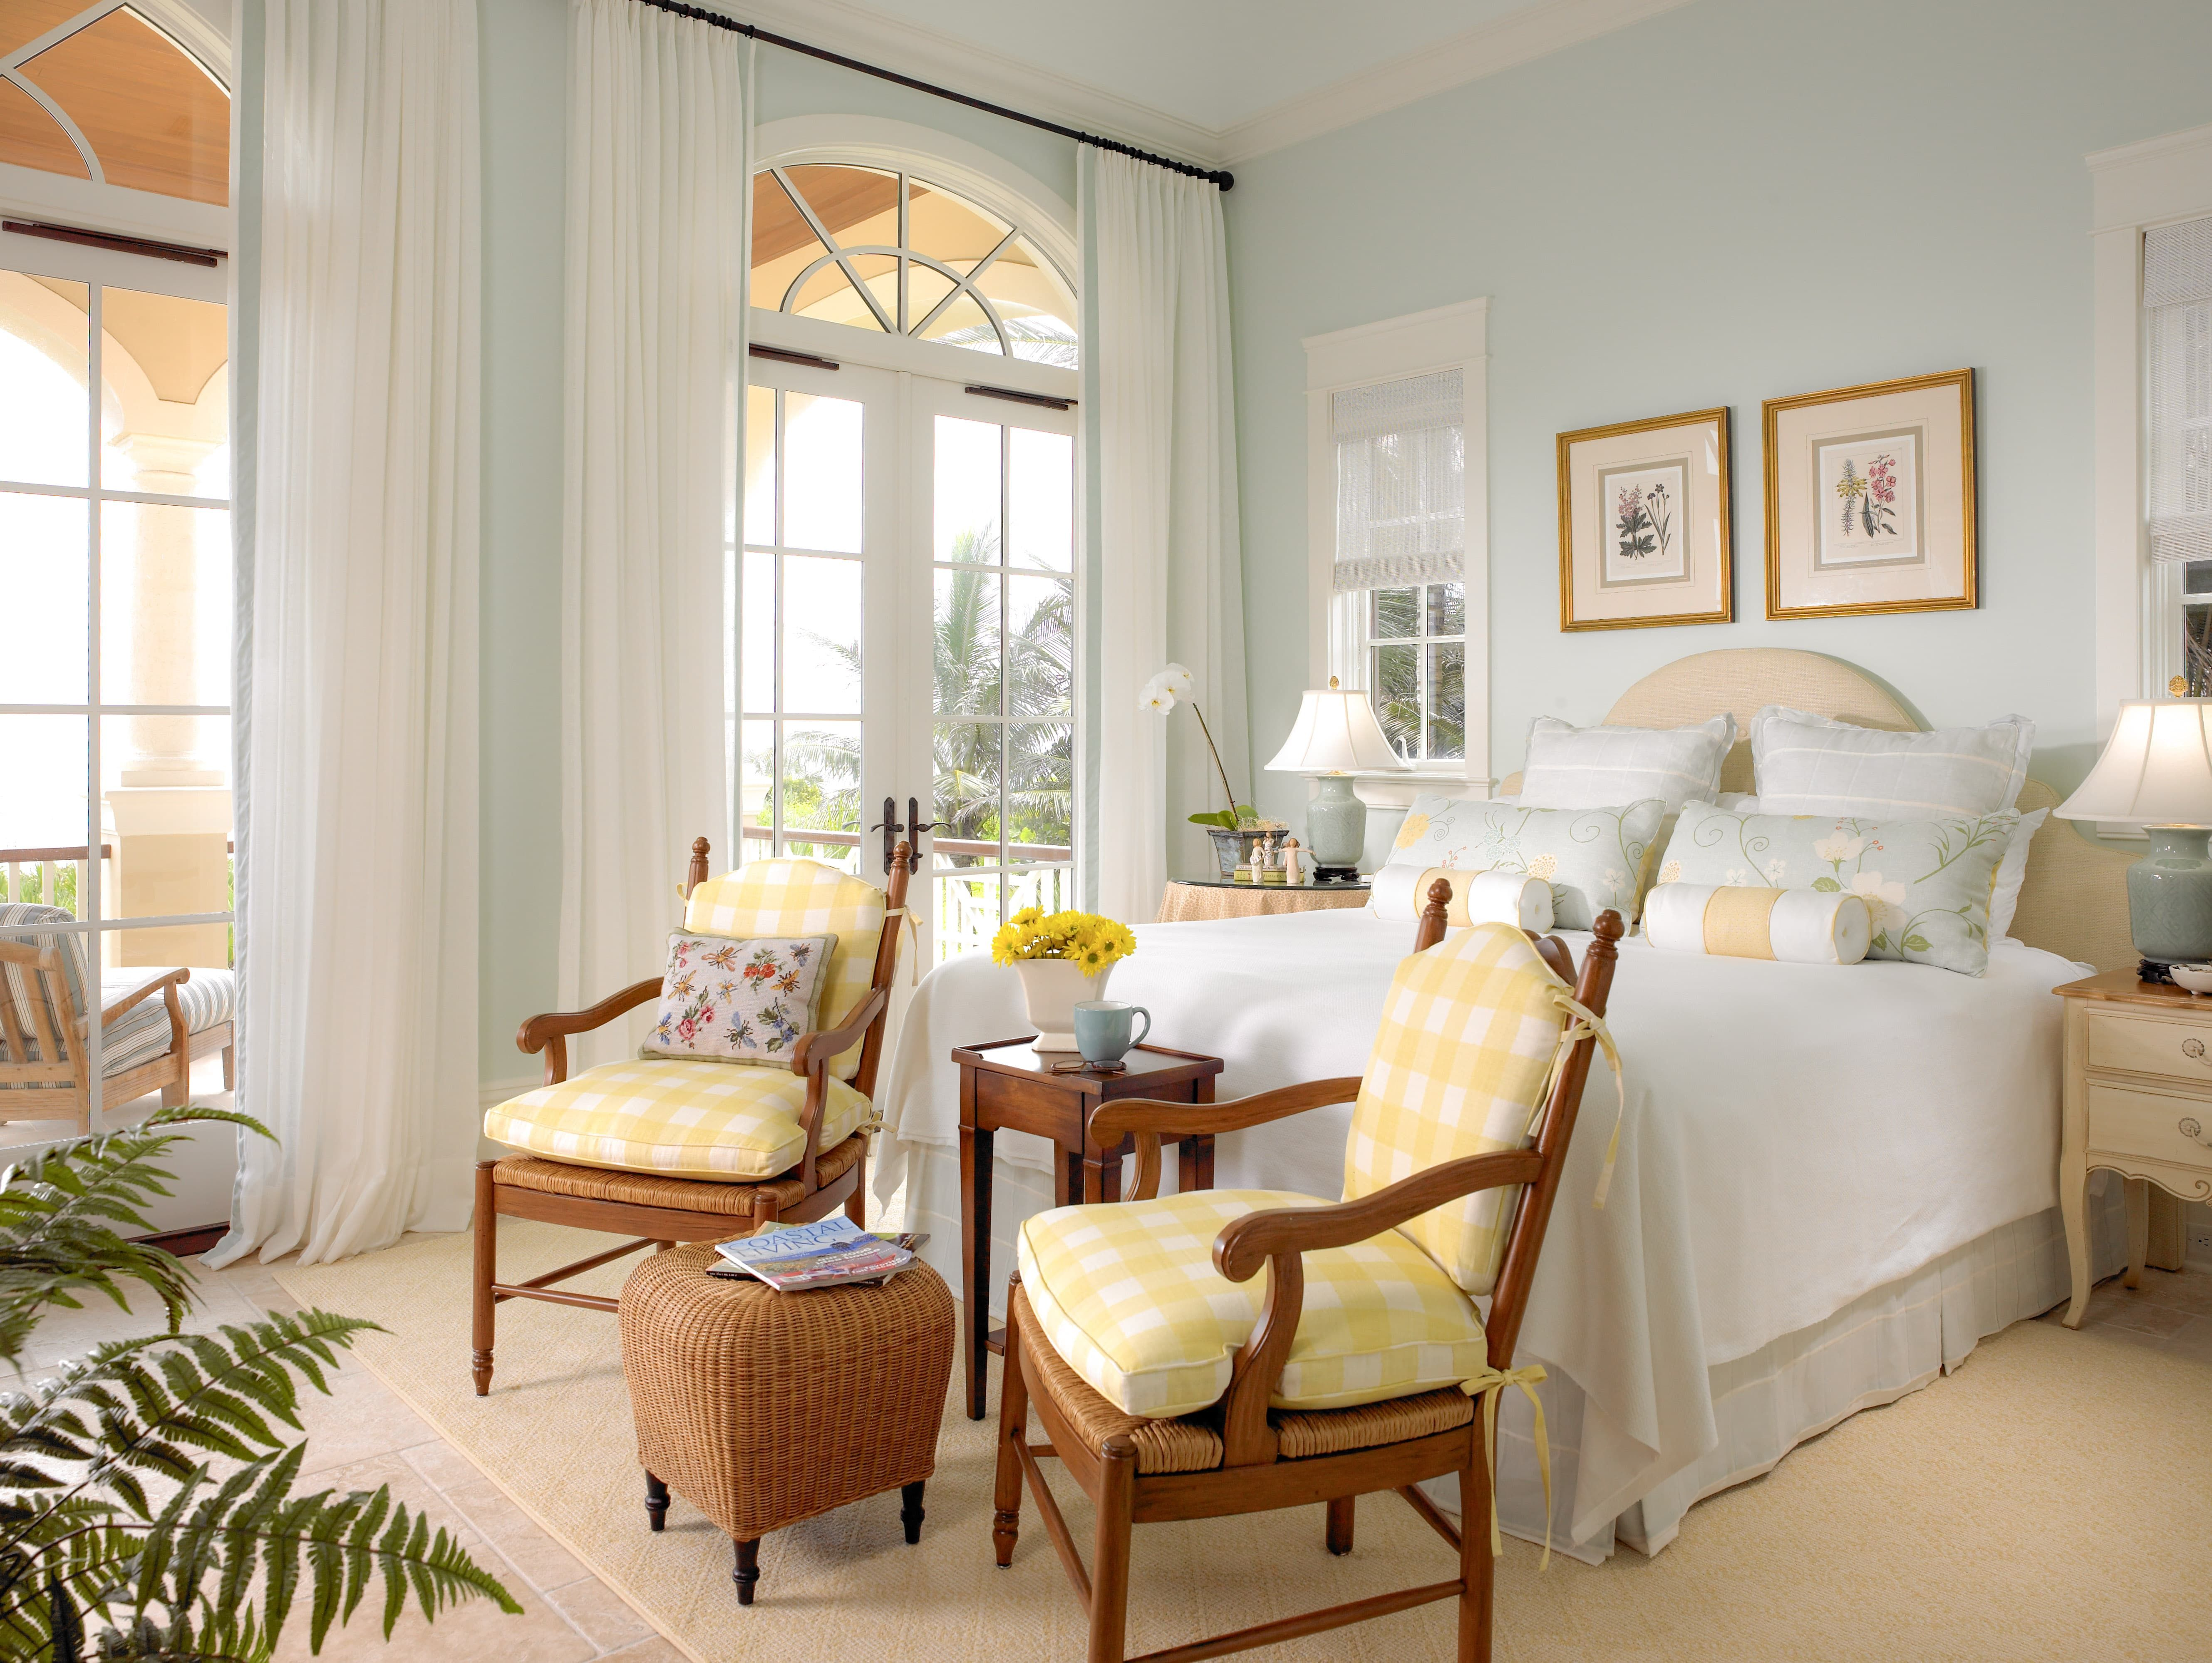 French Country Cottage Bedroom Decor Inspiration Yellow Blue Bedroom Tradi Traditional Bedroom Design Farmhouse Bedroom Decor Country Cottage Bedroom Decor